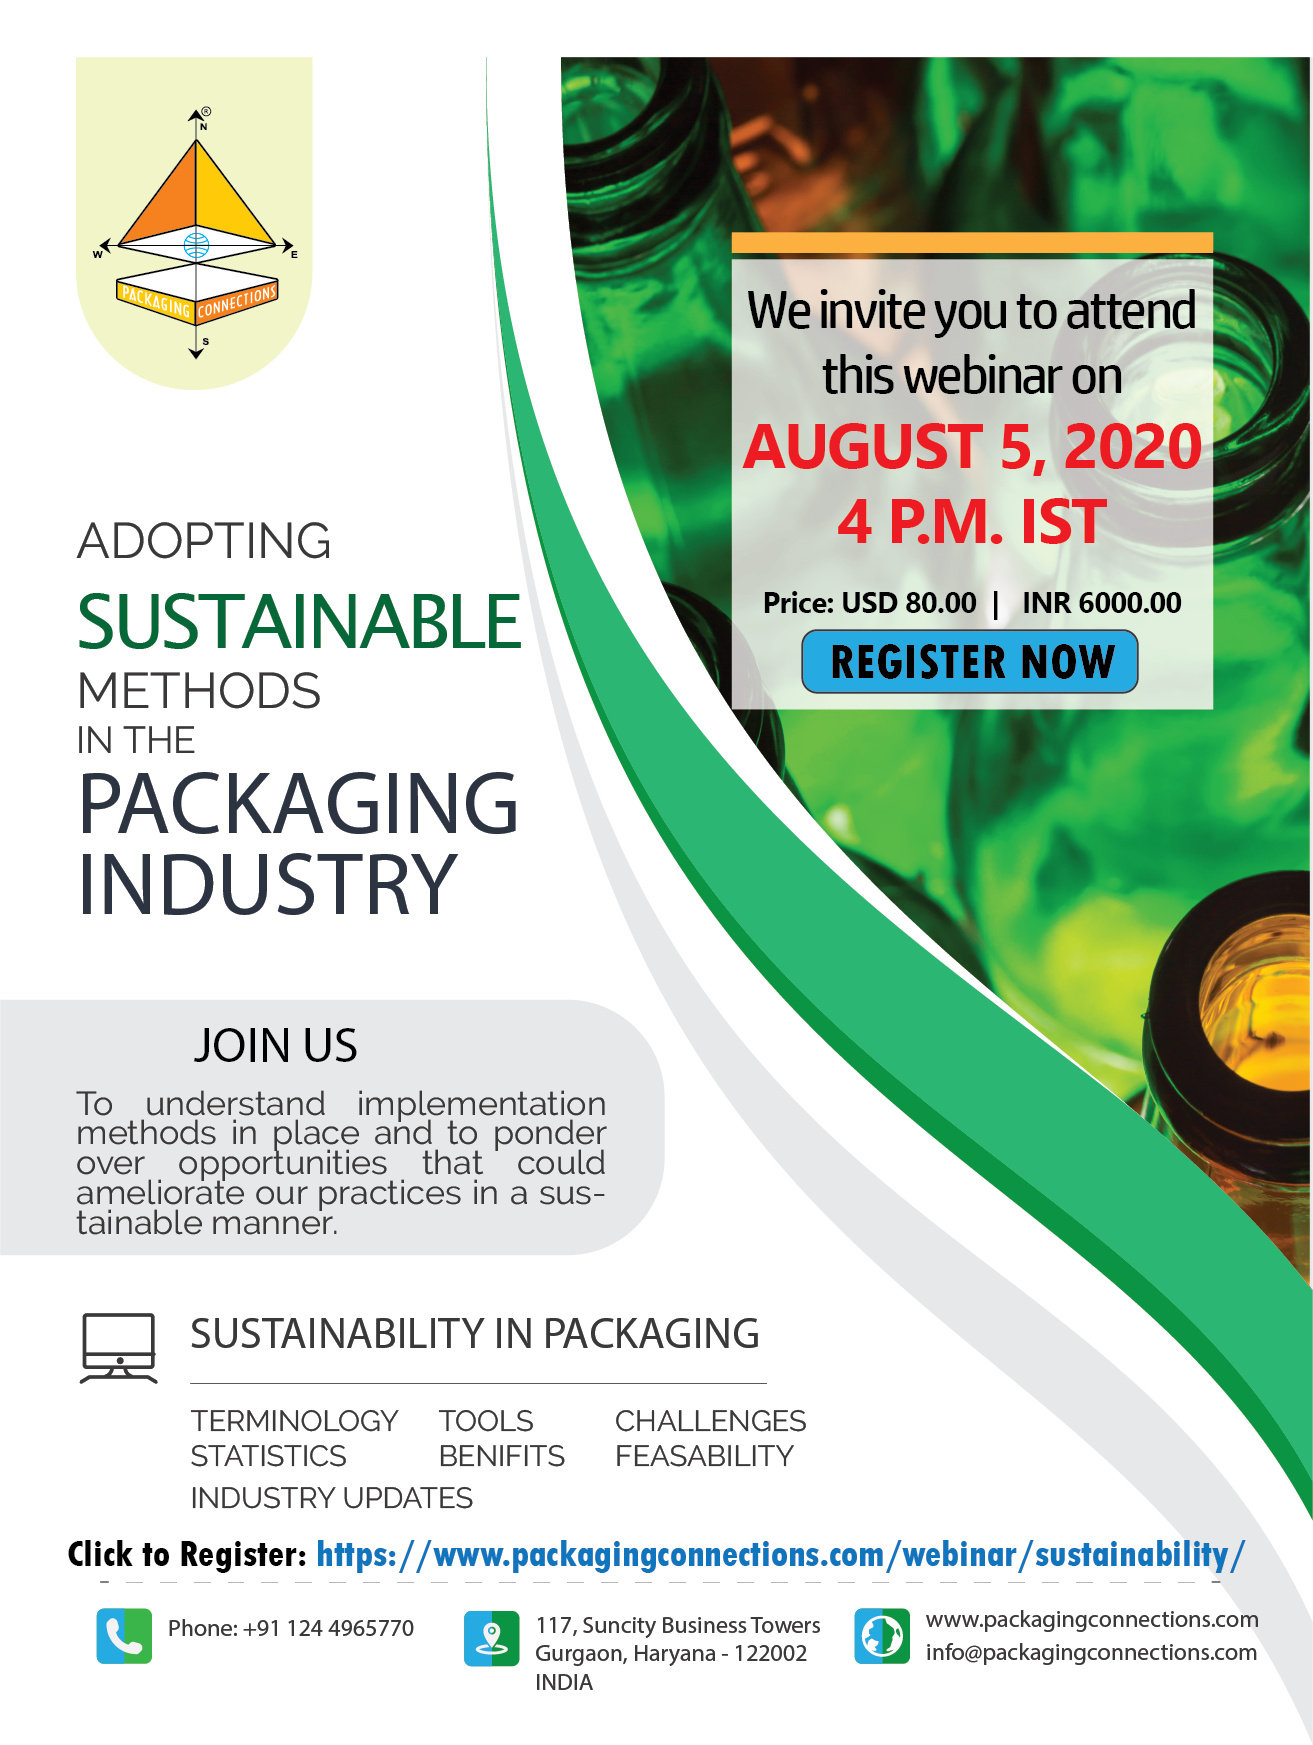 PackagingConnections Webinar on Sustainability in Packaging